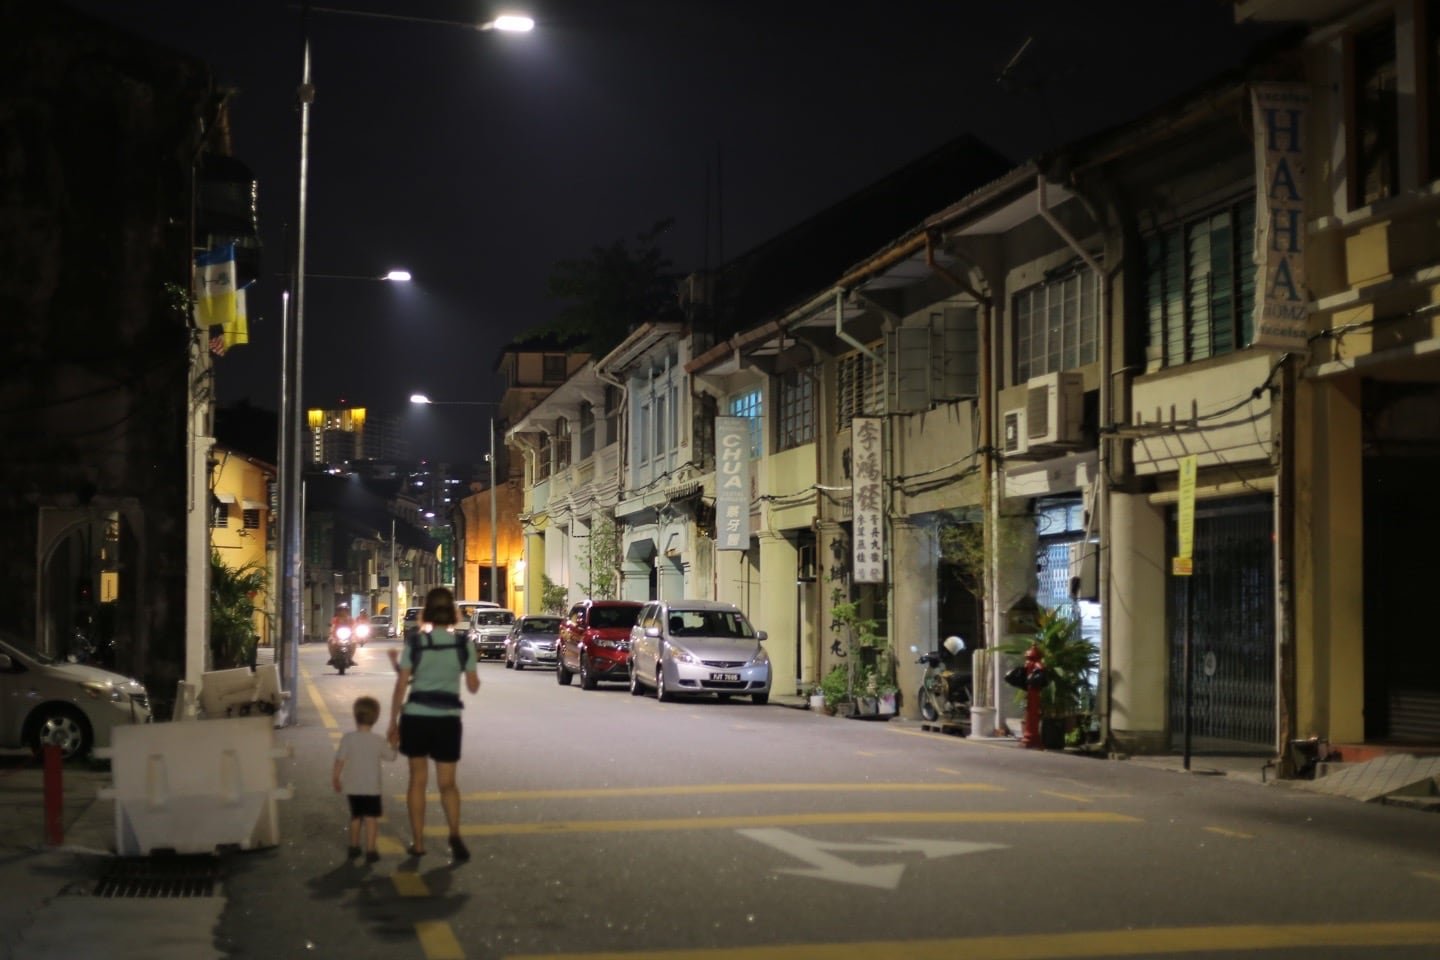 George Town Penang by night